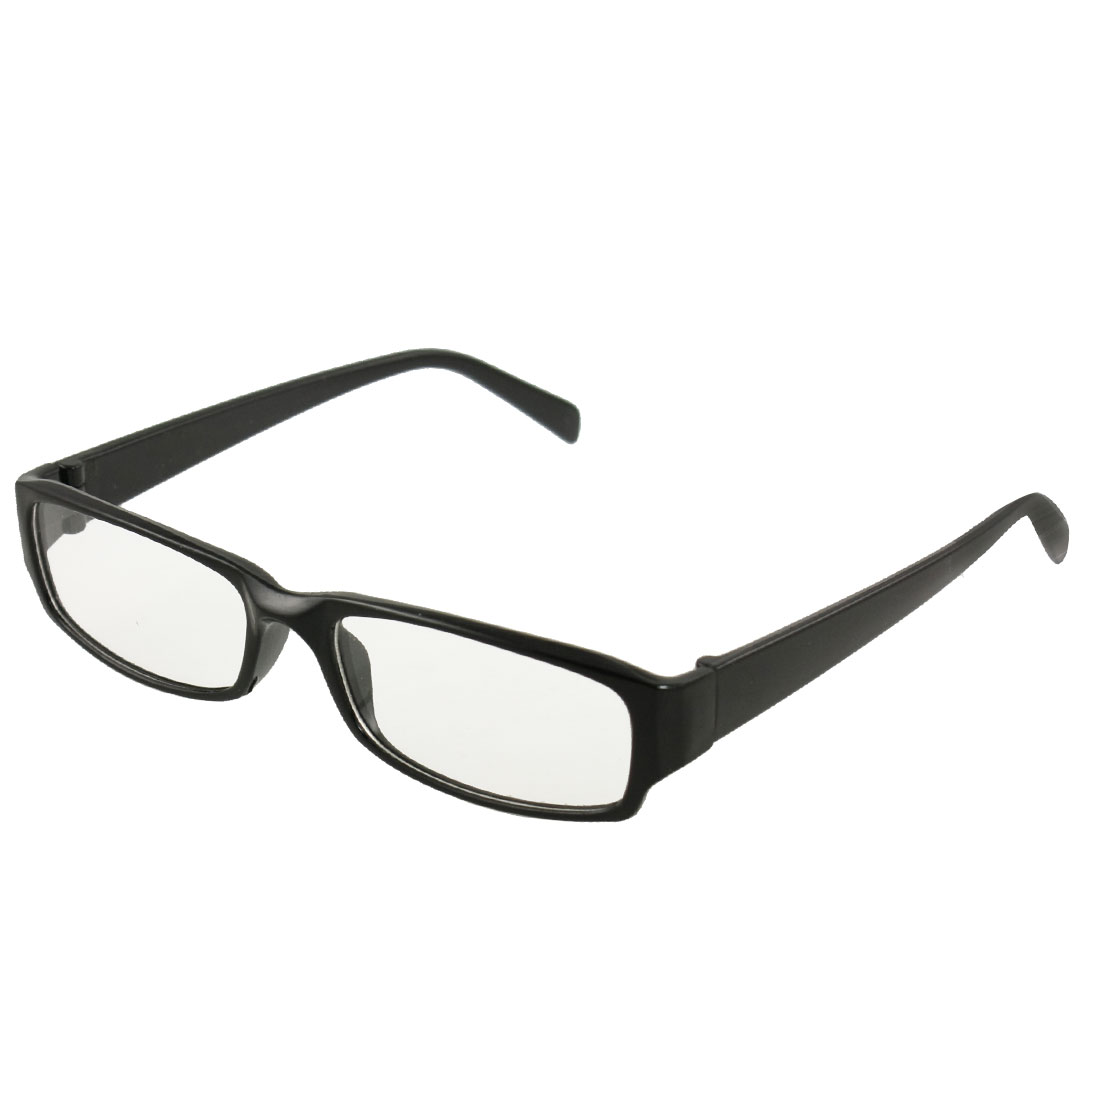 Lady Men Black Frame Rectangle Clear Lens Eyewear Plain Glasses